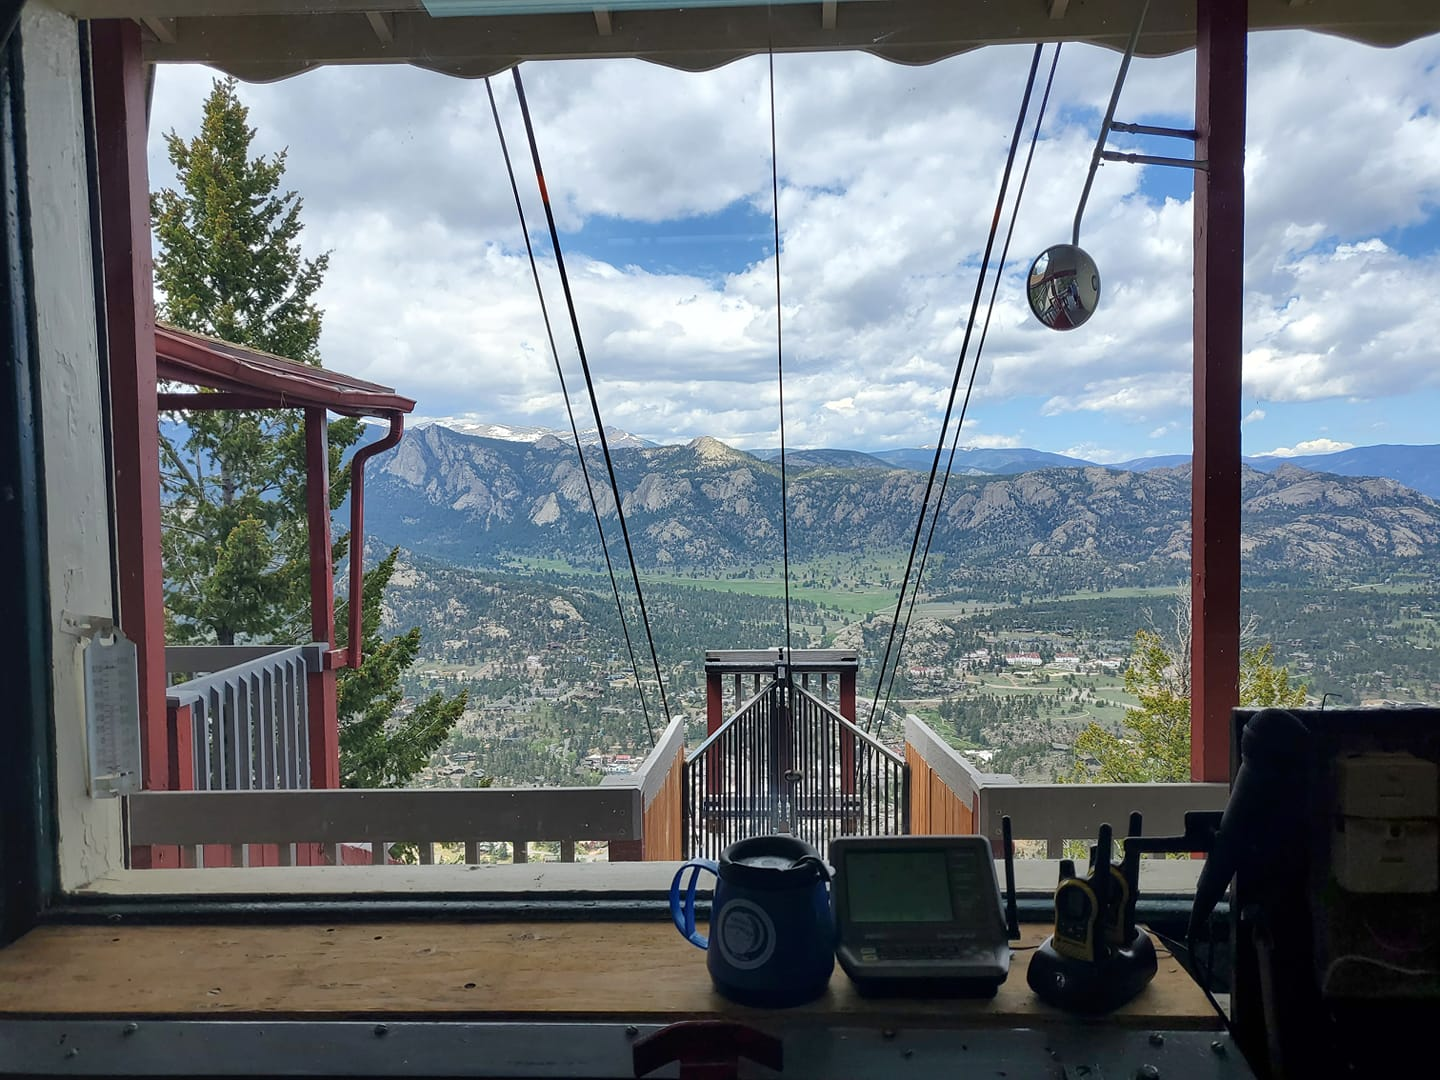 Image of the view from Estes Park Aerial Tram in Colorado